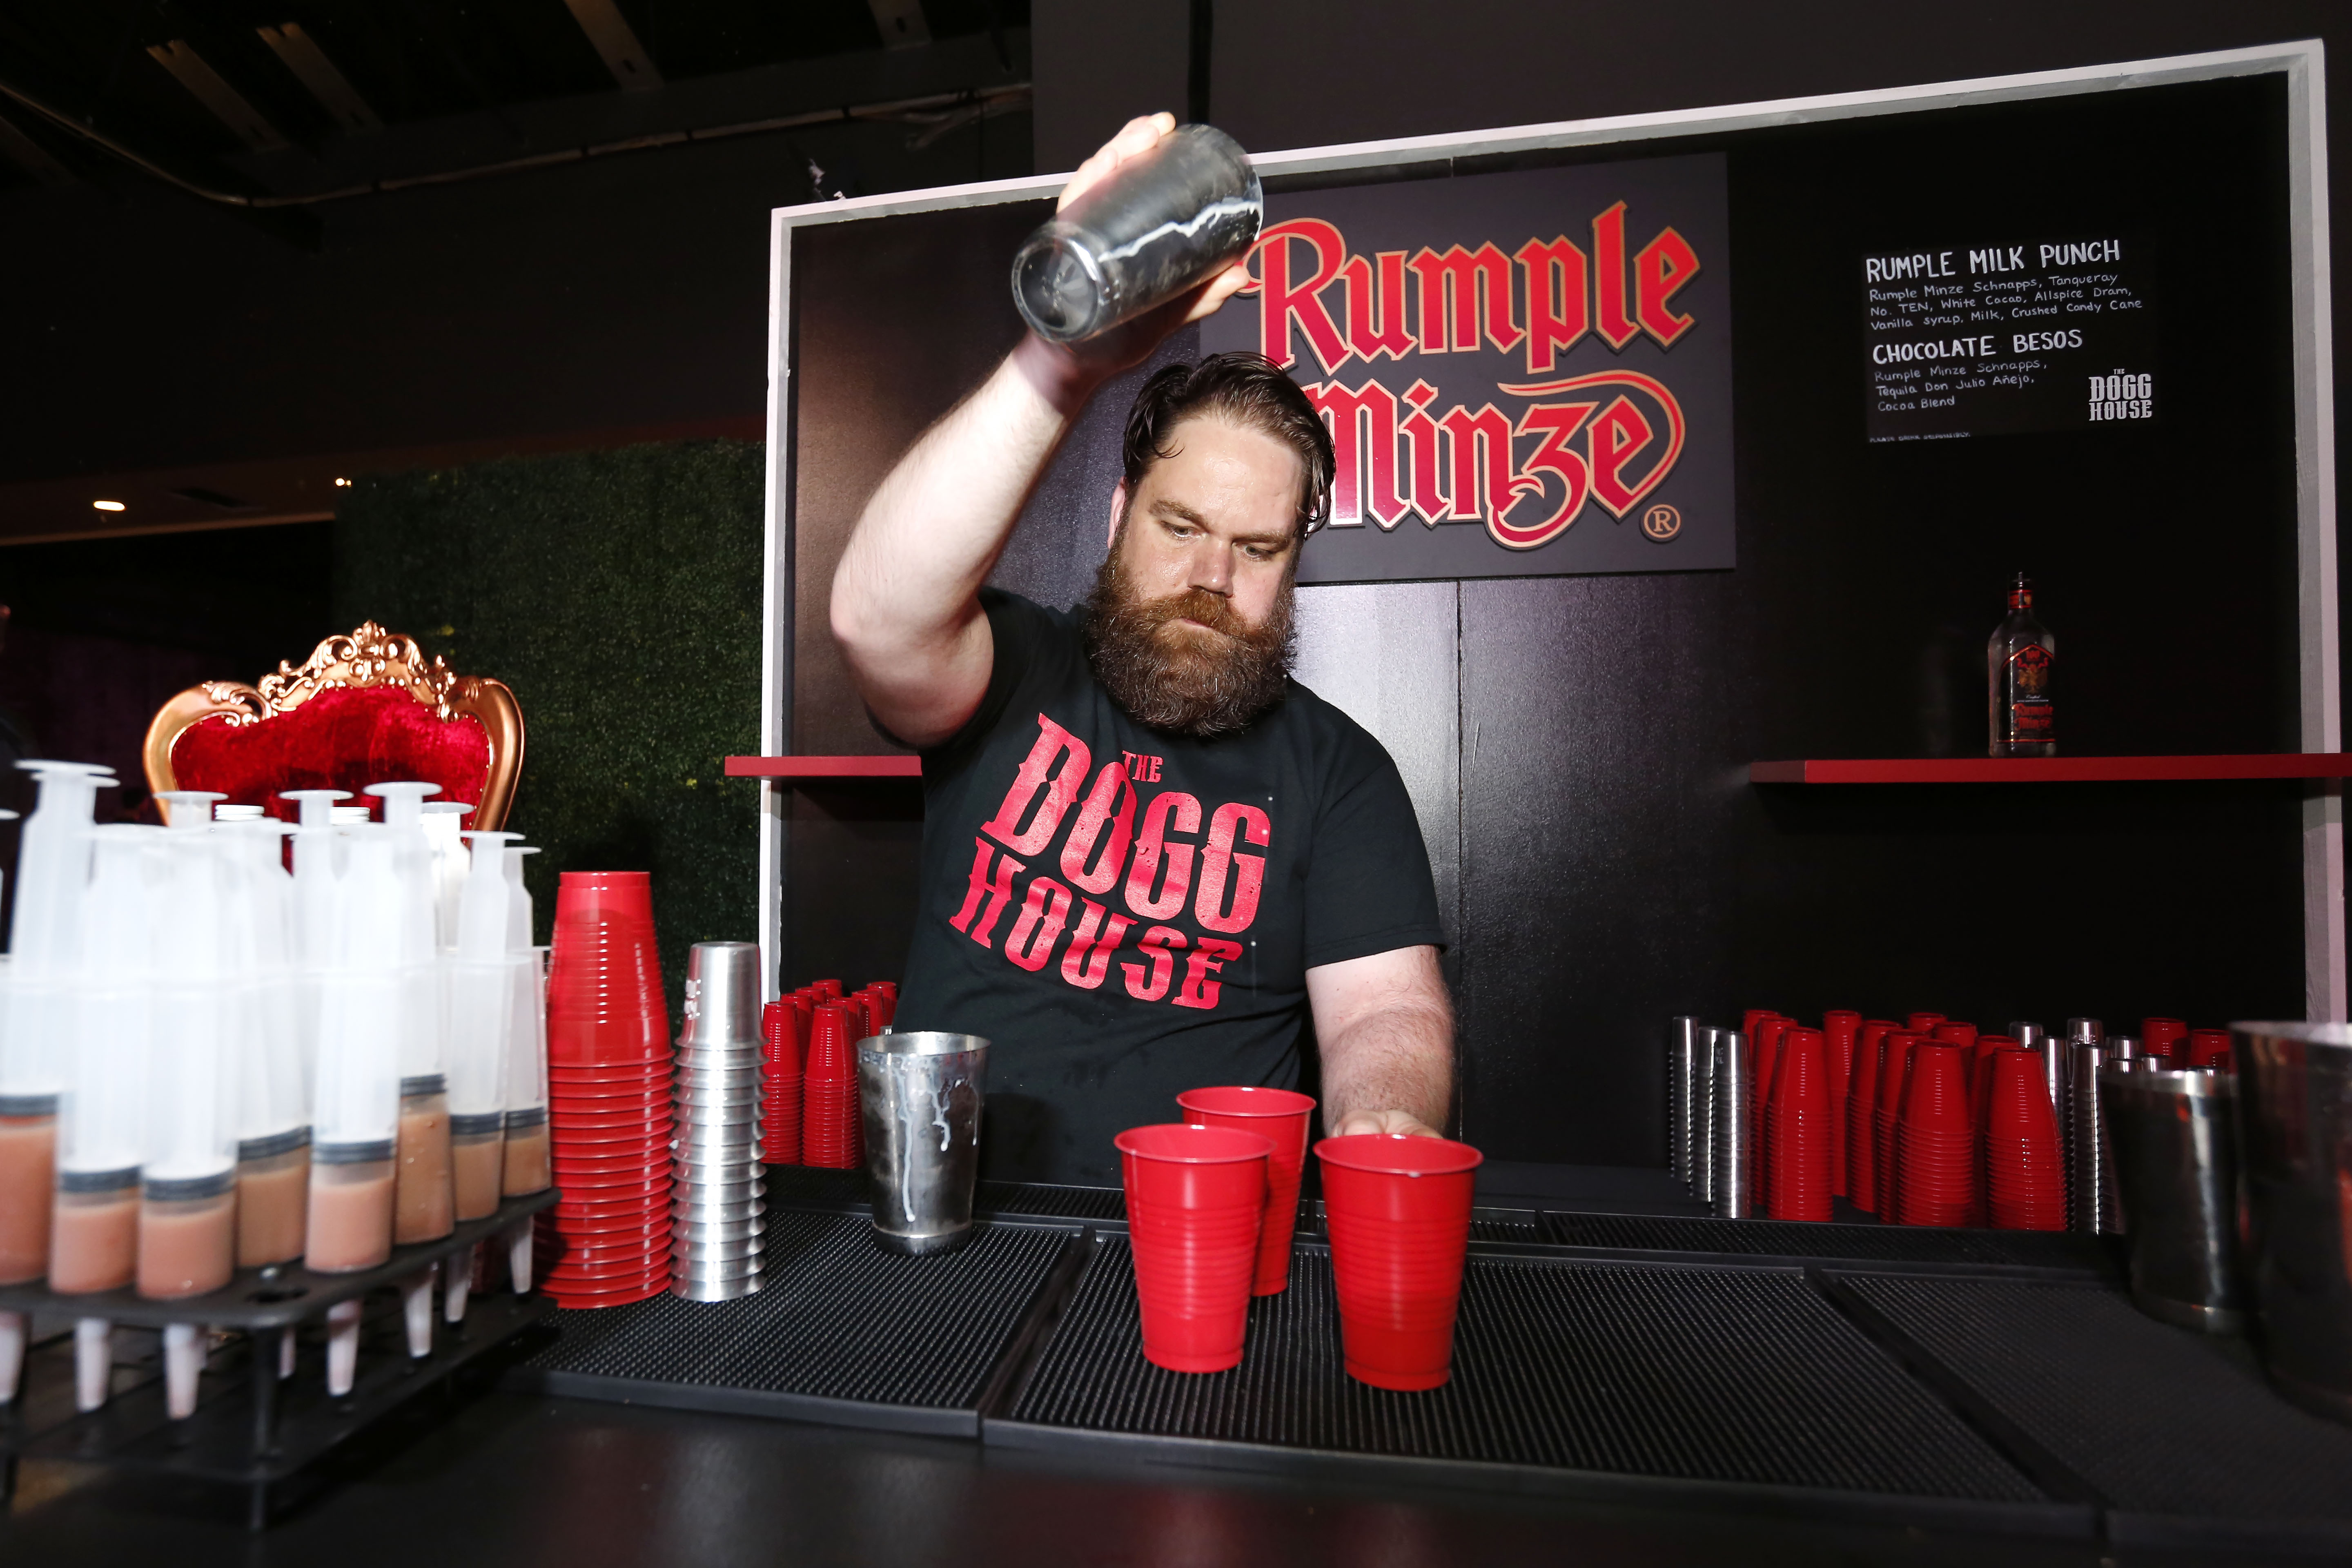 NEW ORLEANS, LA - JULY 21: Signature cocktails served at The Dogg House during Tales Of The Cocktail on July 21, 2017 in New Orleans, Louisiana. (Photo by Tyler  Kaufman/Getty Images for Diageo) *** Local Caption ***